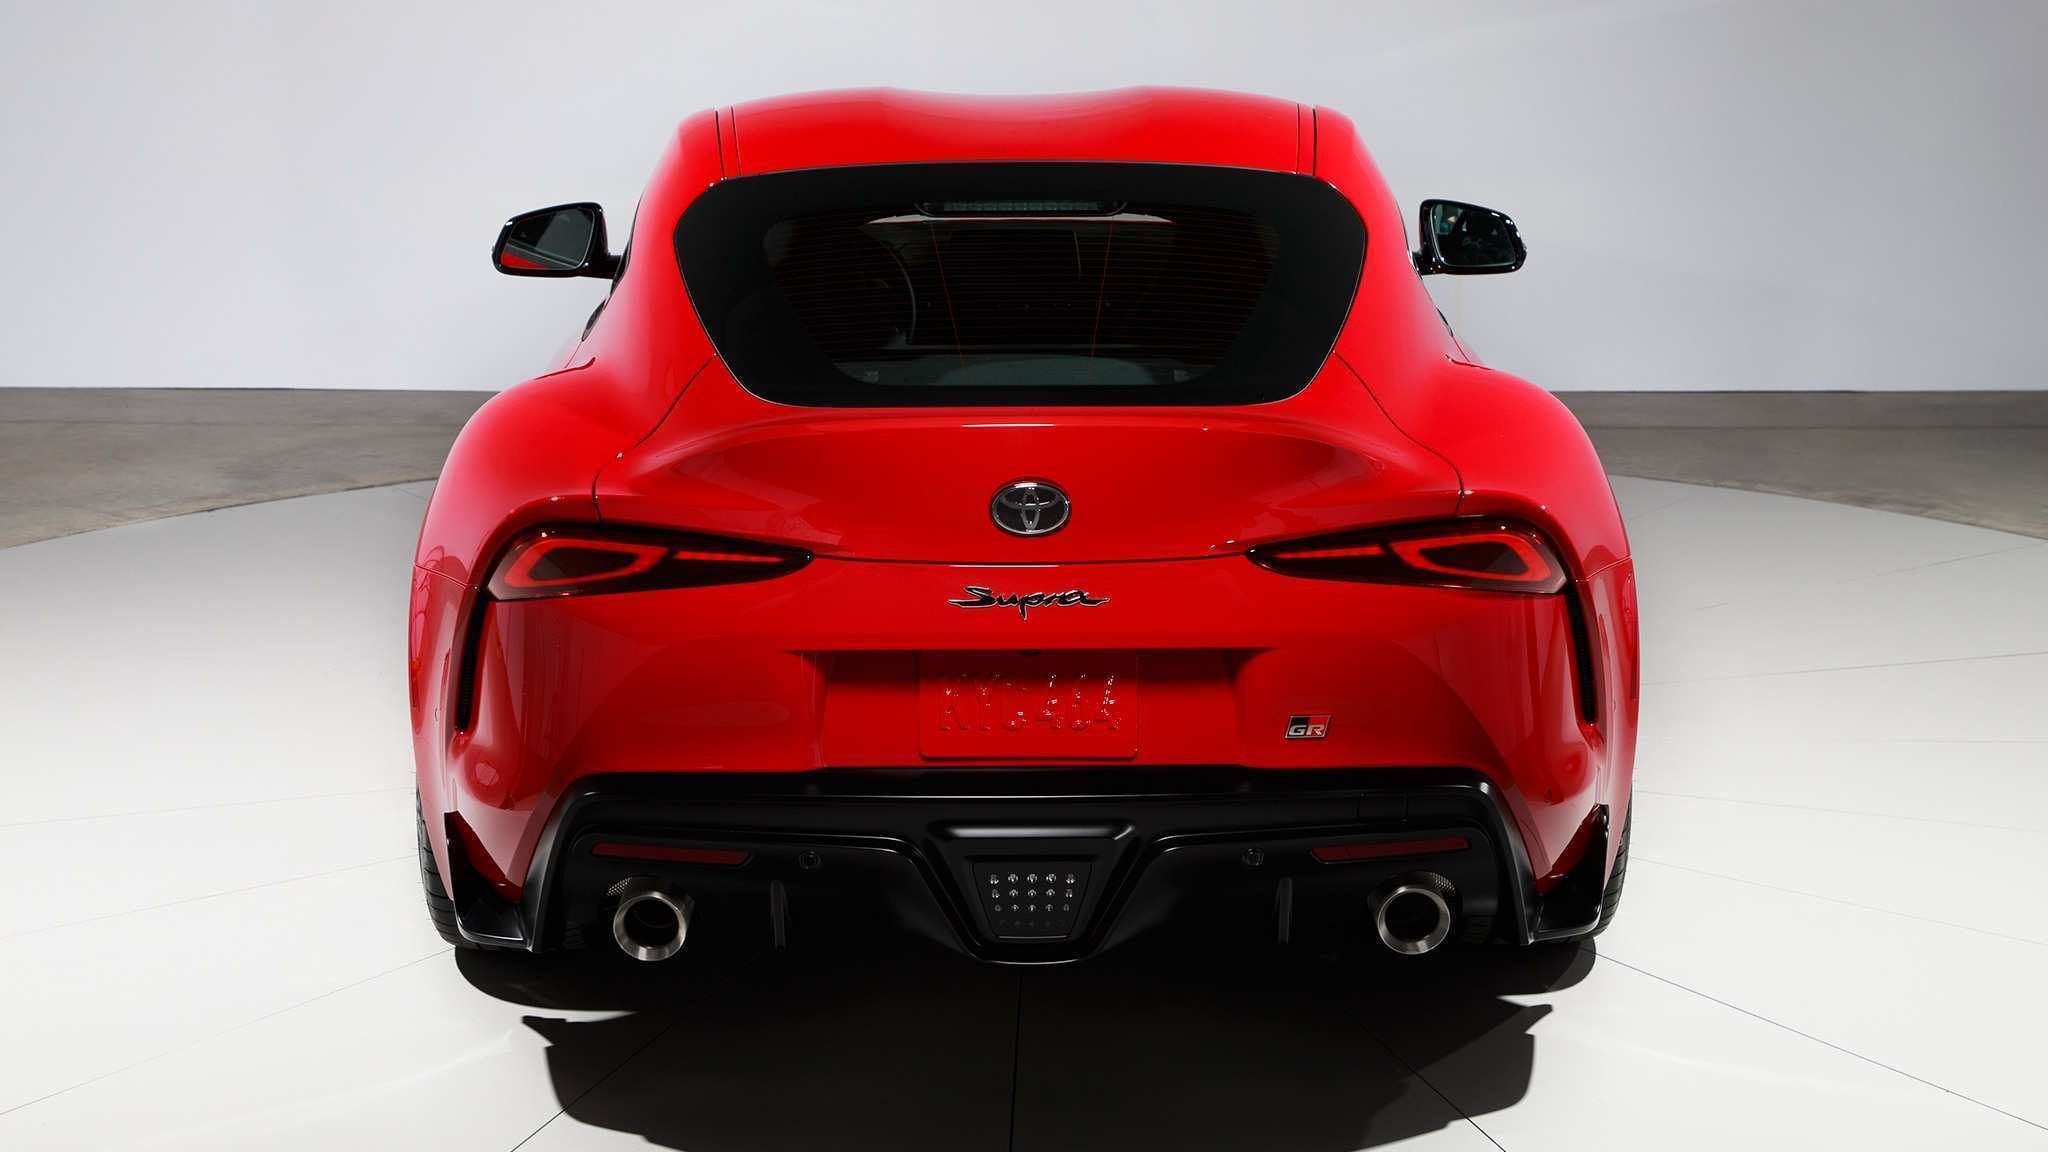 94 All New 2020 Toyota Supra Exterior Spesification for 2020 Toyota Supra Exterior